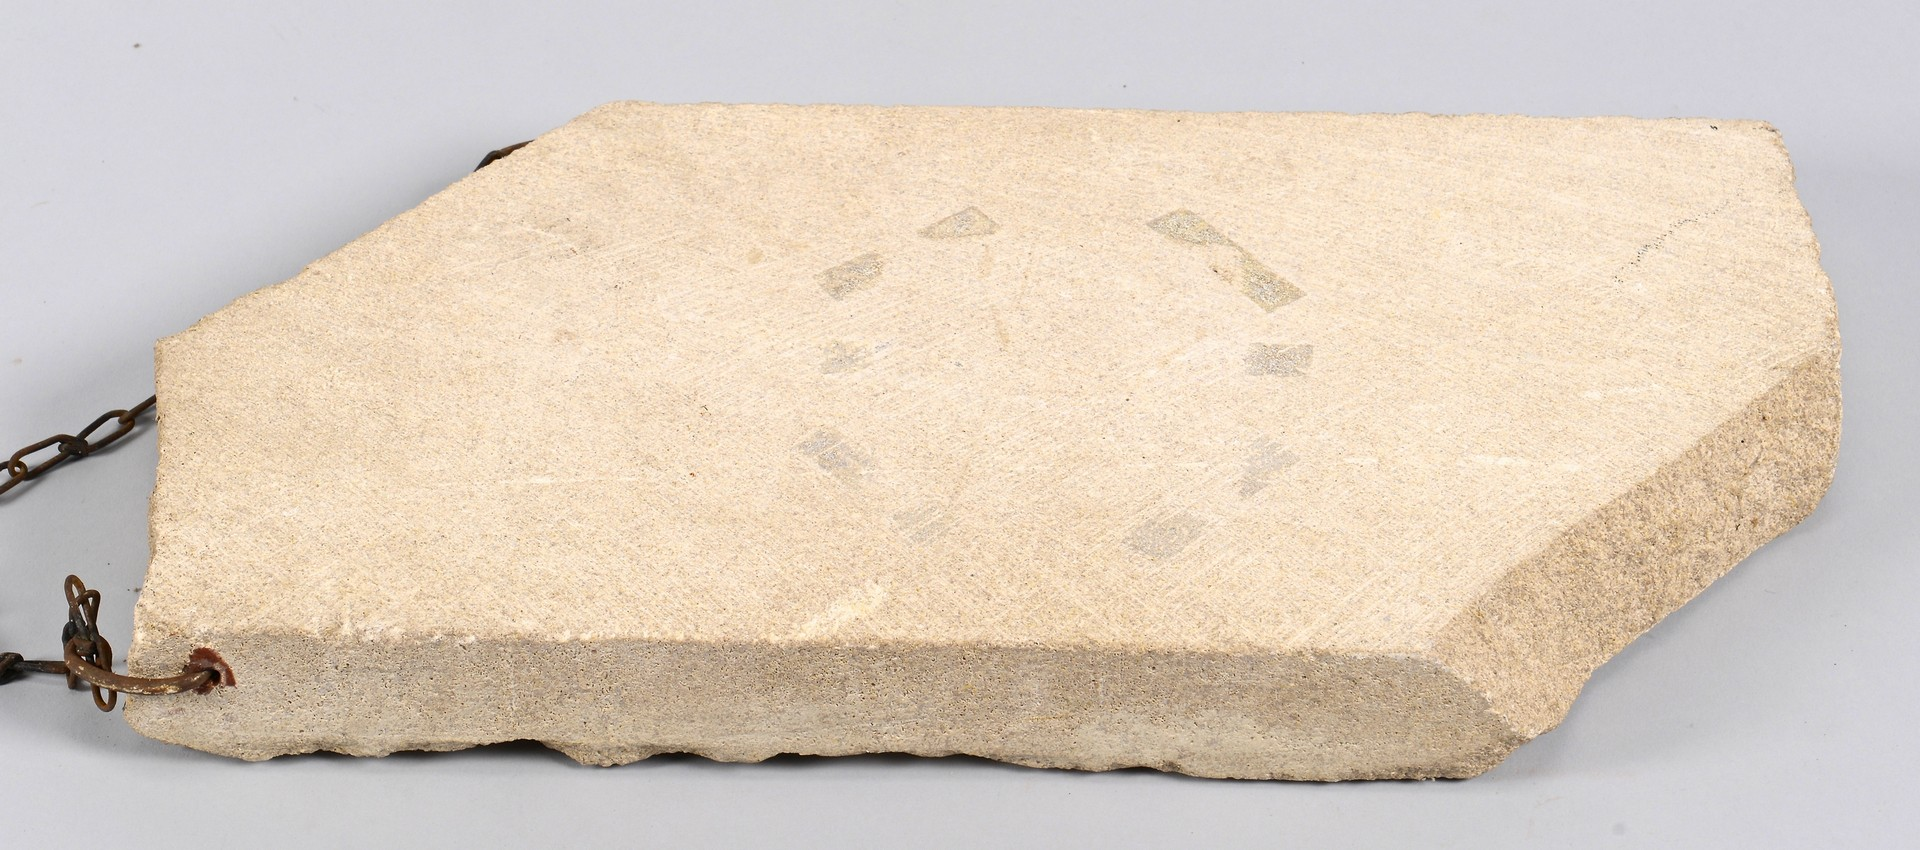 Lot 432: David Day, Small Stone Face Sculpture